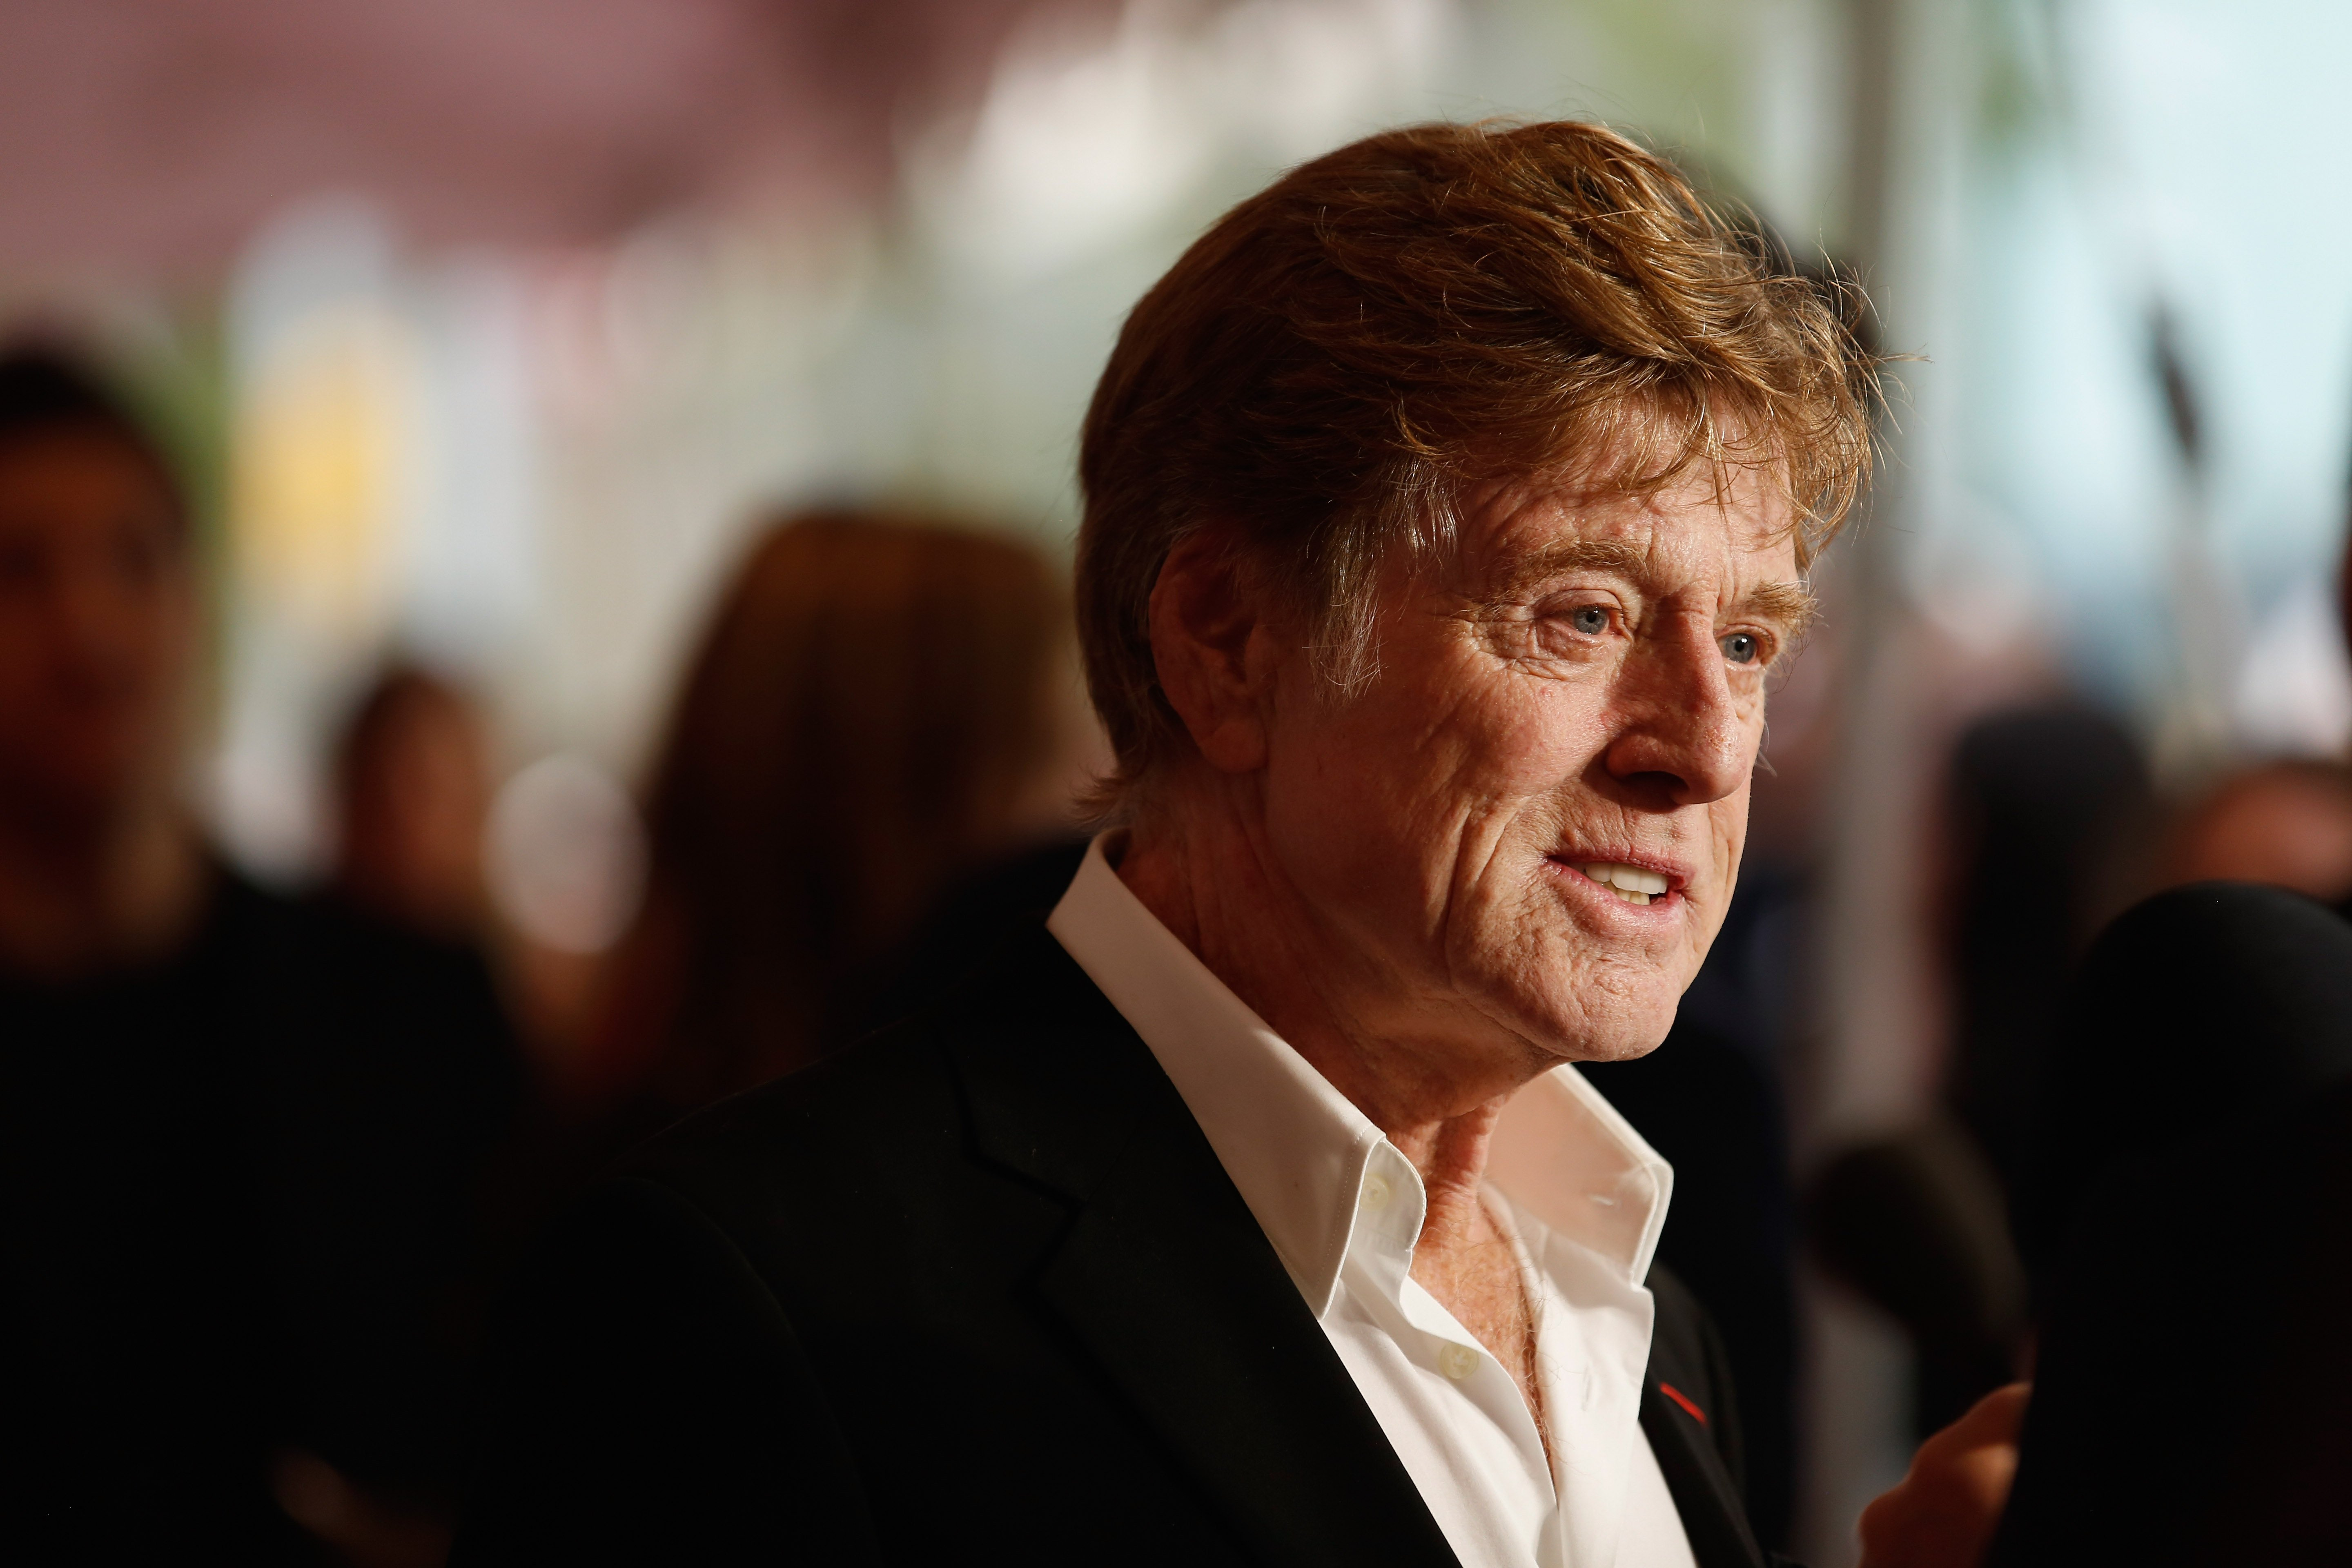 """Robert Redford at the """"All Is Lost"""" premiere during the 51st New York Film Festiva on October 8, 2013 